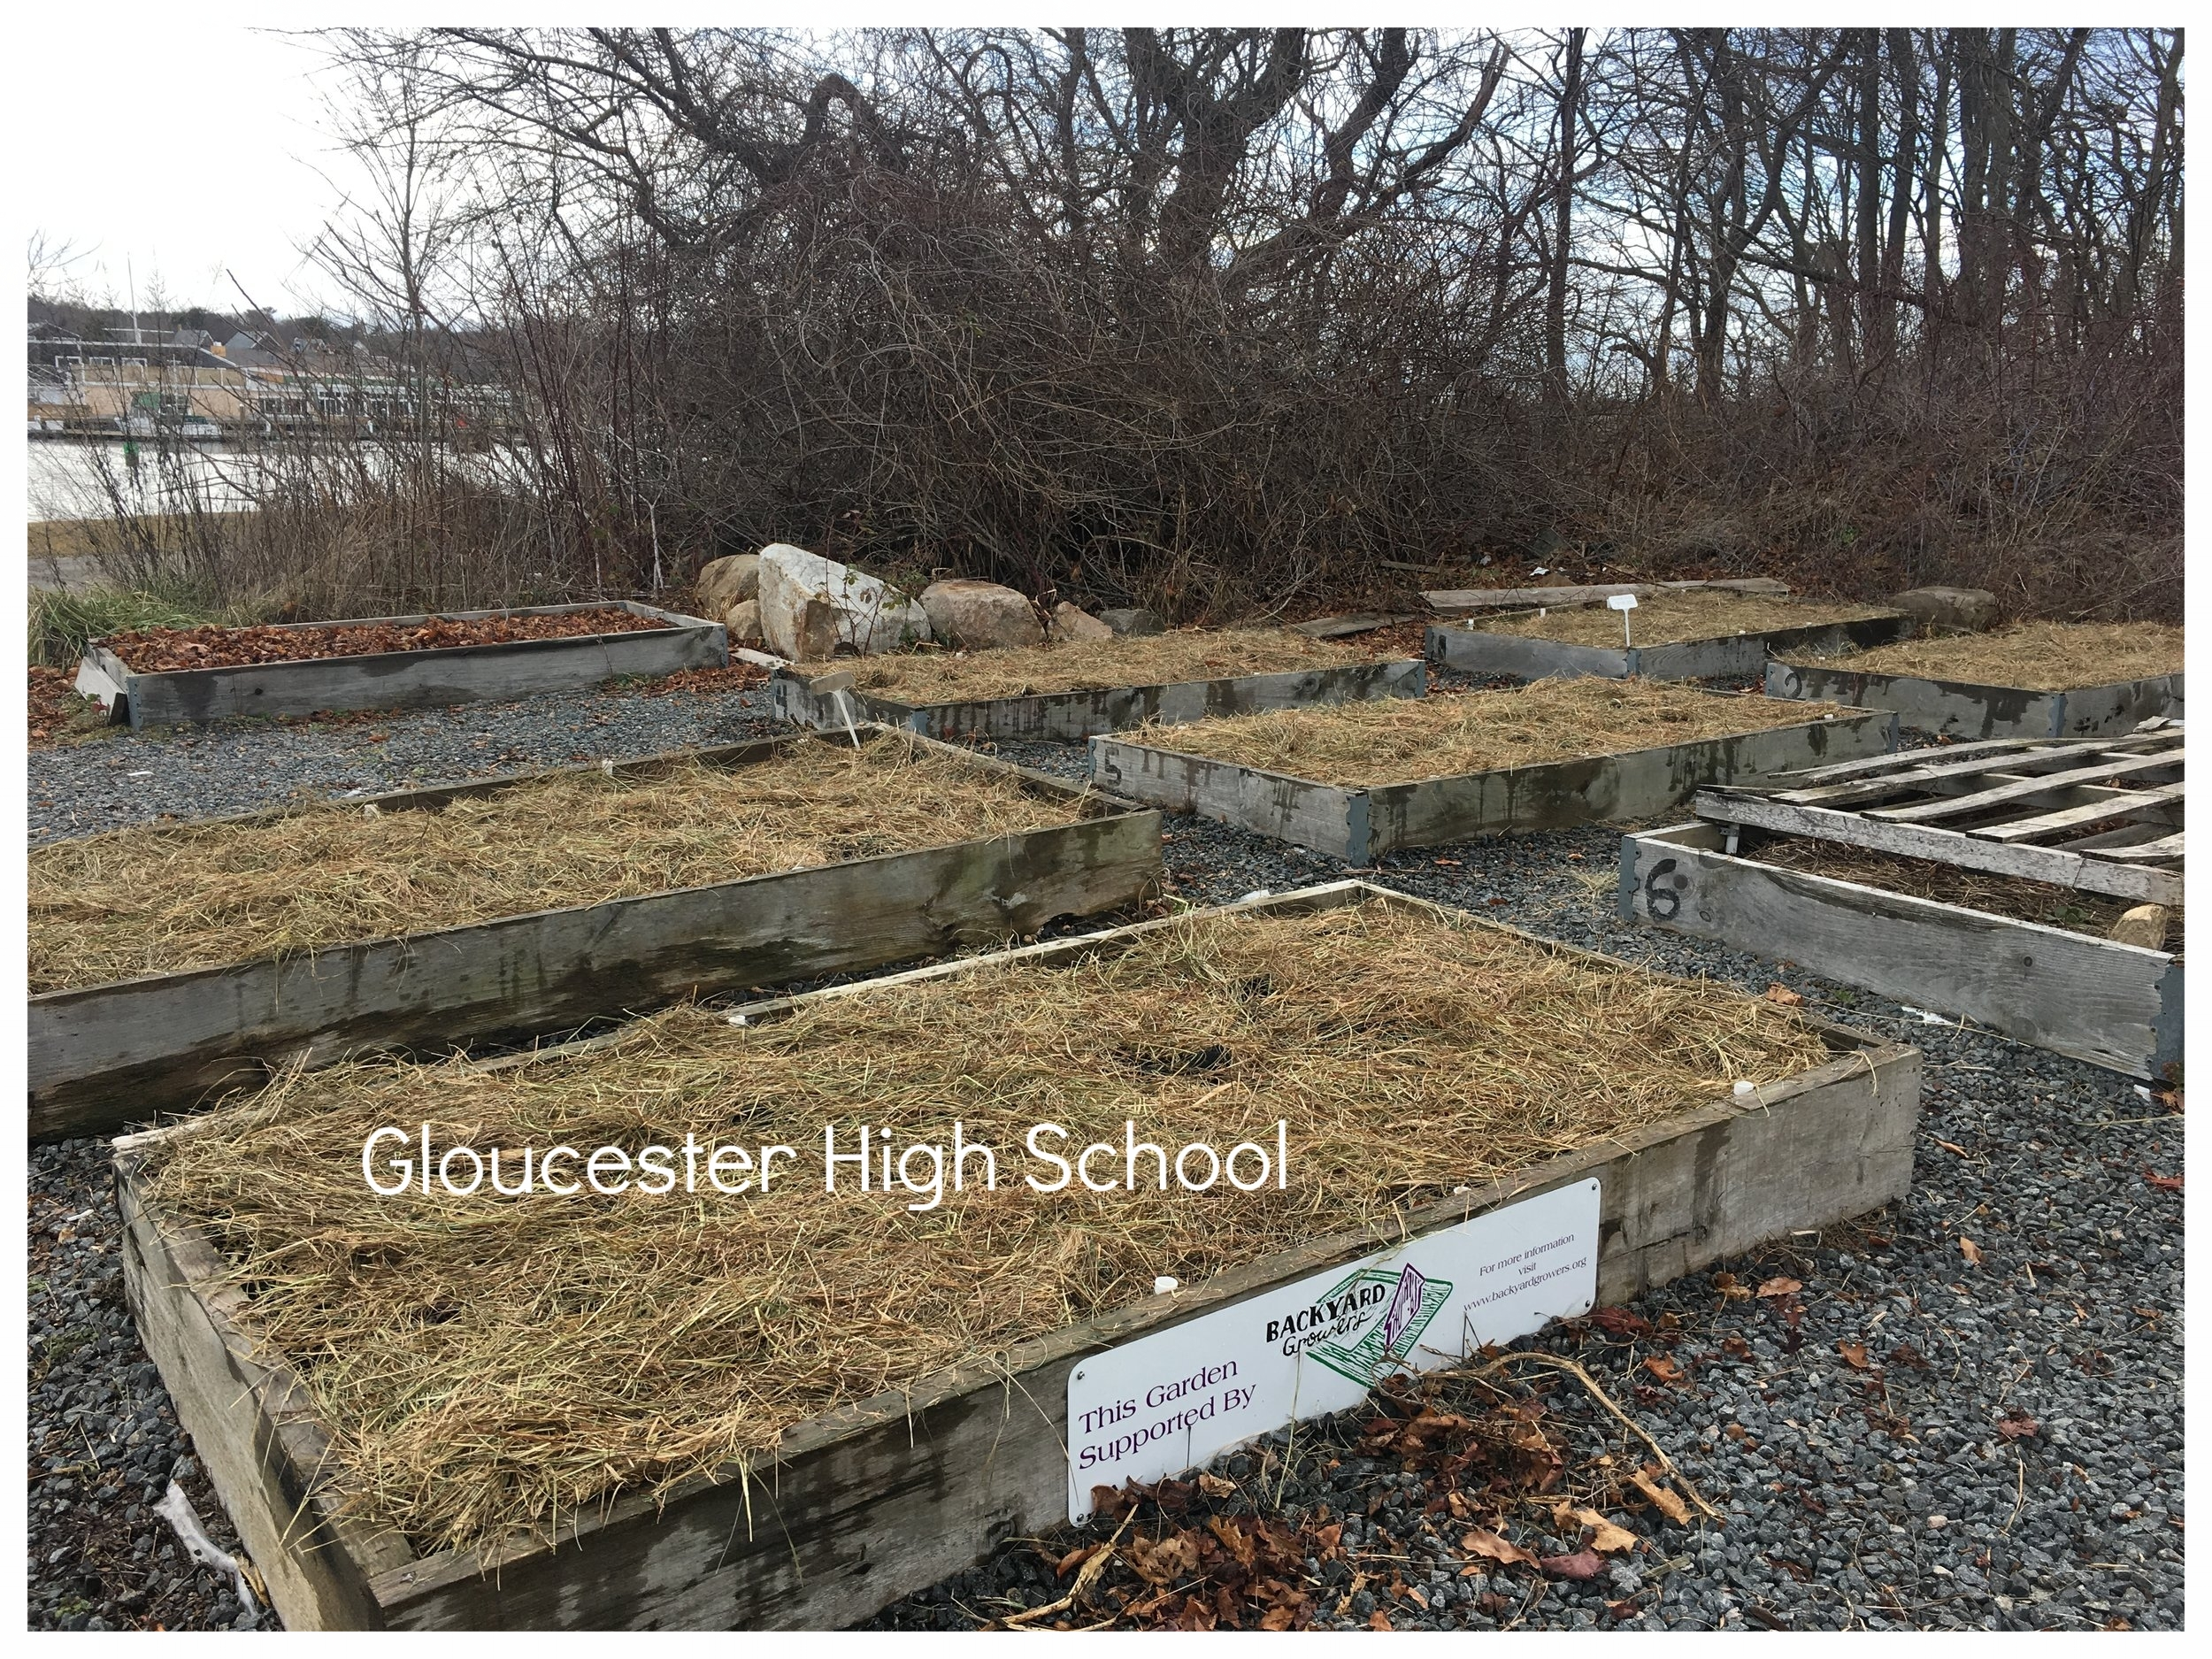 High School Garden Mulched_Dec2016.jpeg